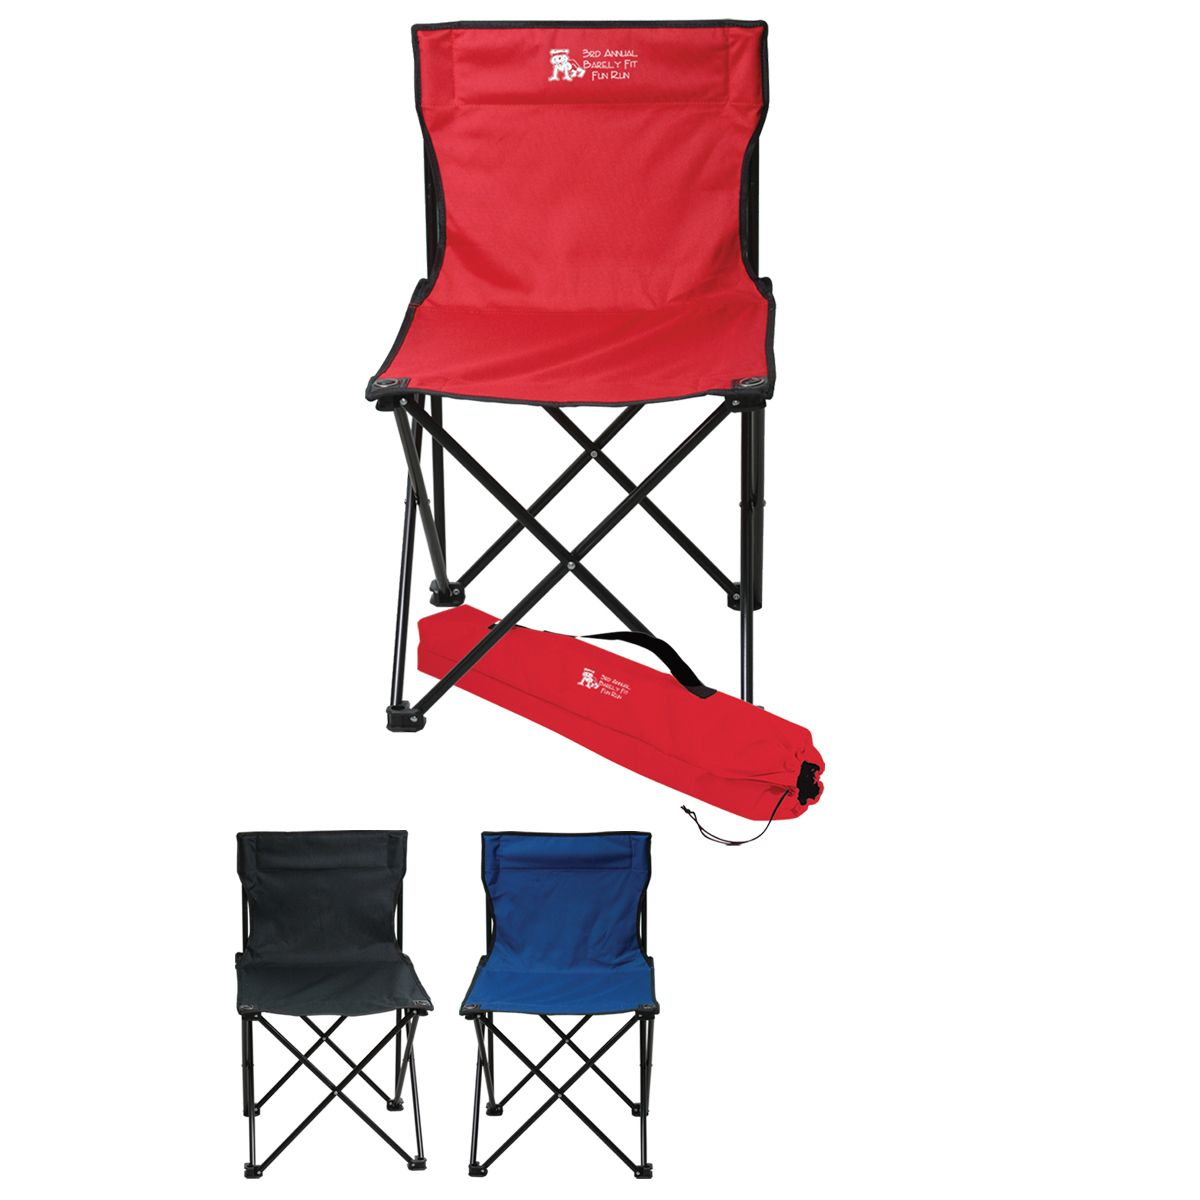 These Are The Perfect Folding Chairs For Tailgating At Your Next Game Comes With It S Own Carrying Ca Folding Chair Outdoor Folding Chairs Personalized Chairs